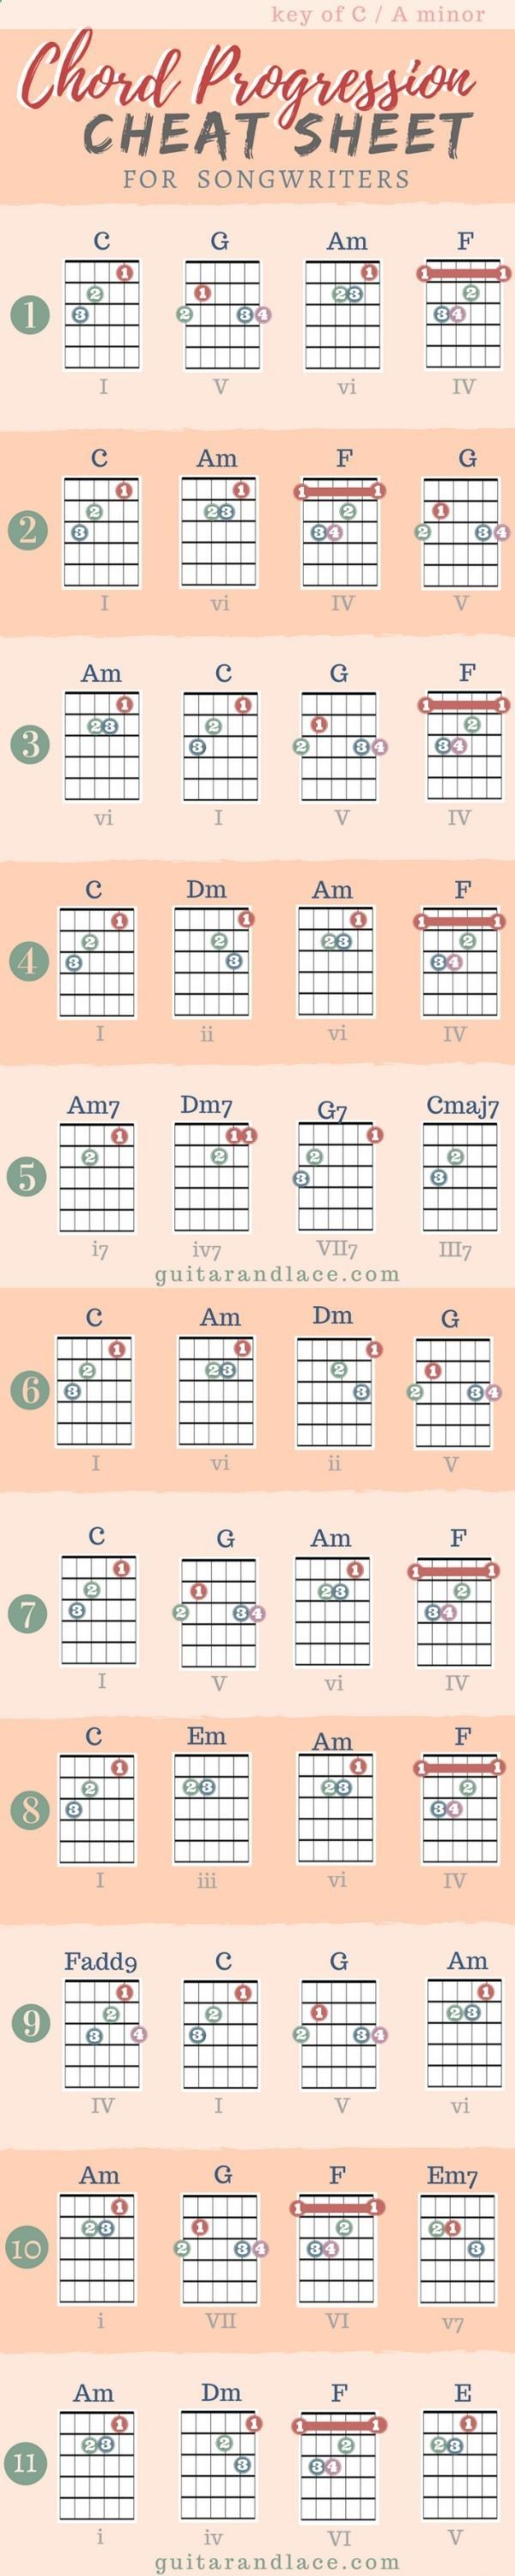 45 Best Guitar Hero Images By T Fears On Pinterest Guitar Chords